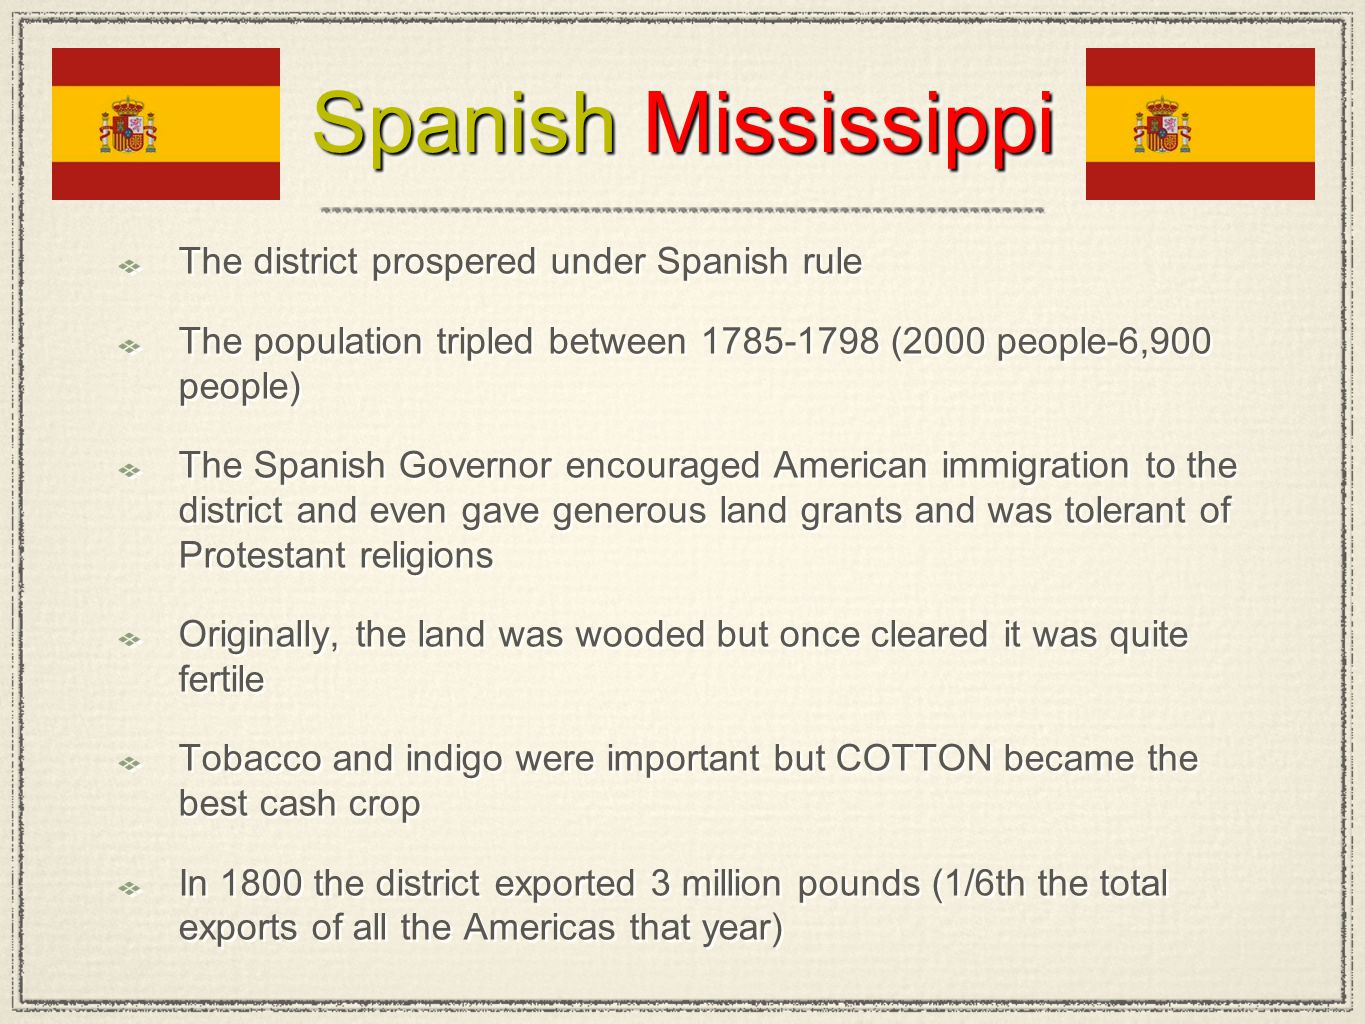 Spanish Mississippi The district prospered under Spanish rule